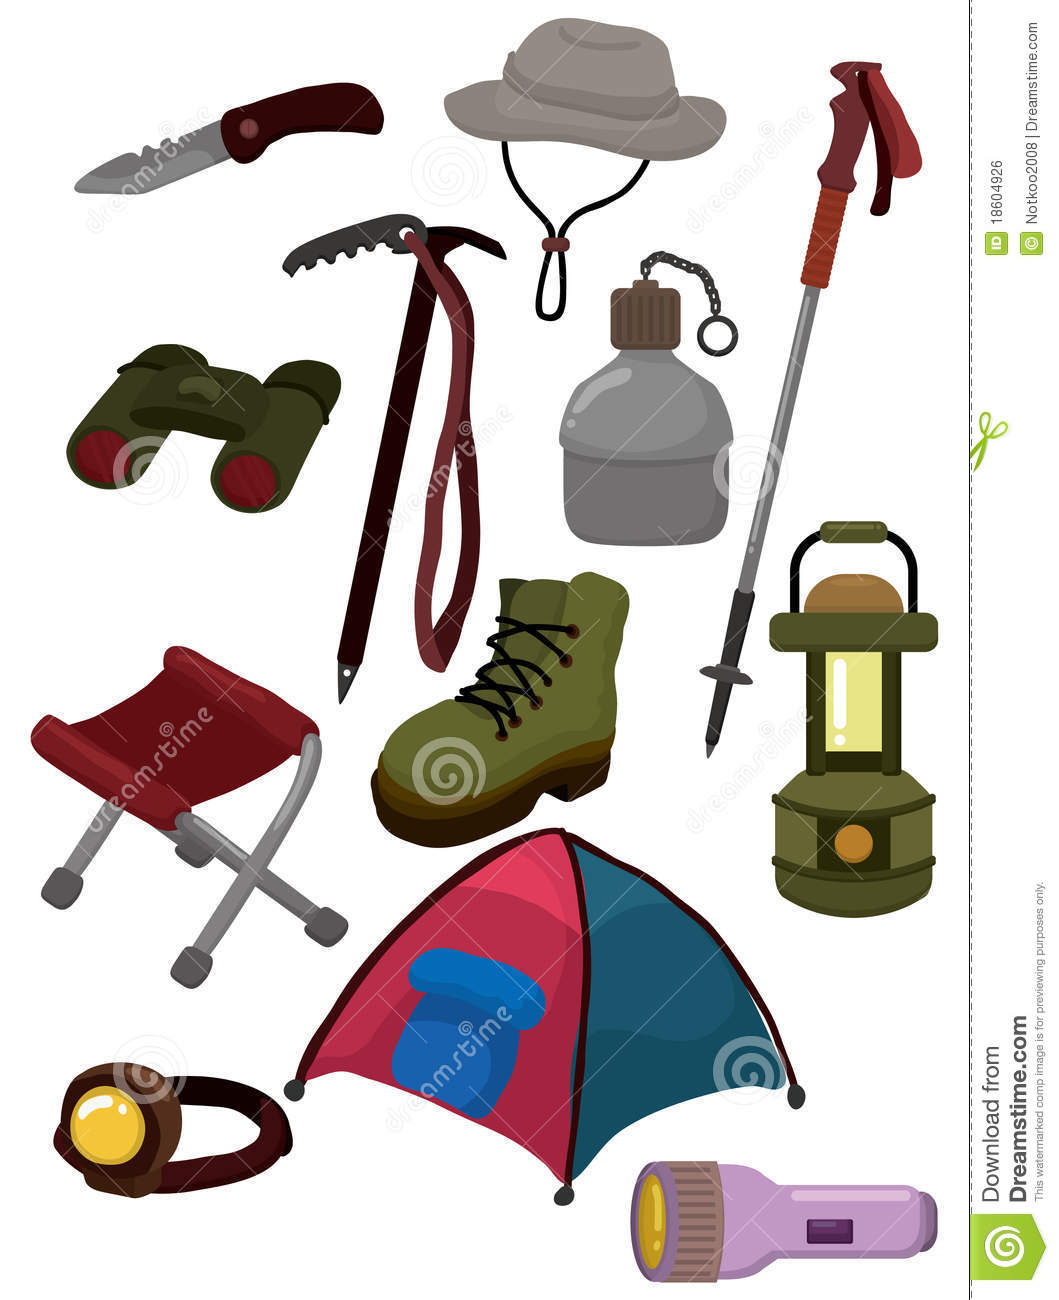 cartoon climb equipment icon royalty free stock image boot camp clip art images boot camp clip art images